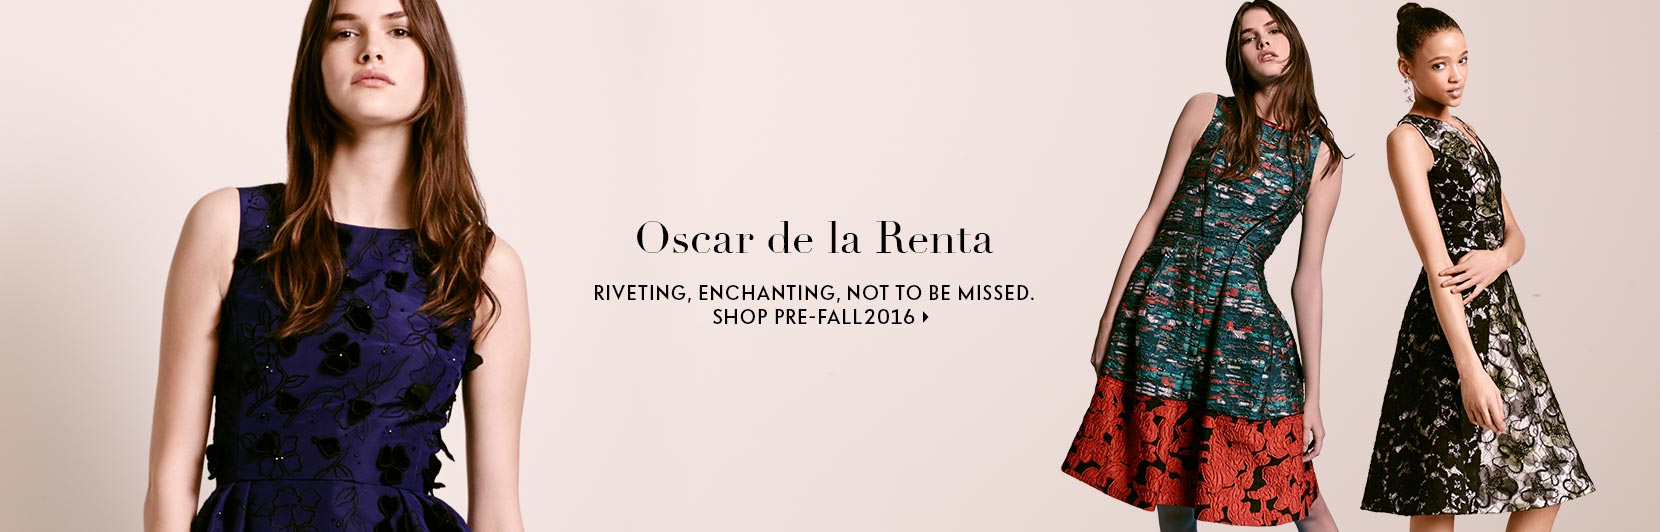 Oscar de la Renta, riveting, enchanting, not to be missed. Shop Spring 2016